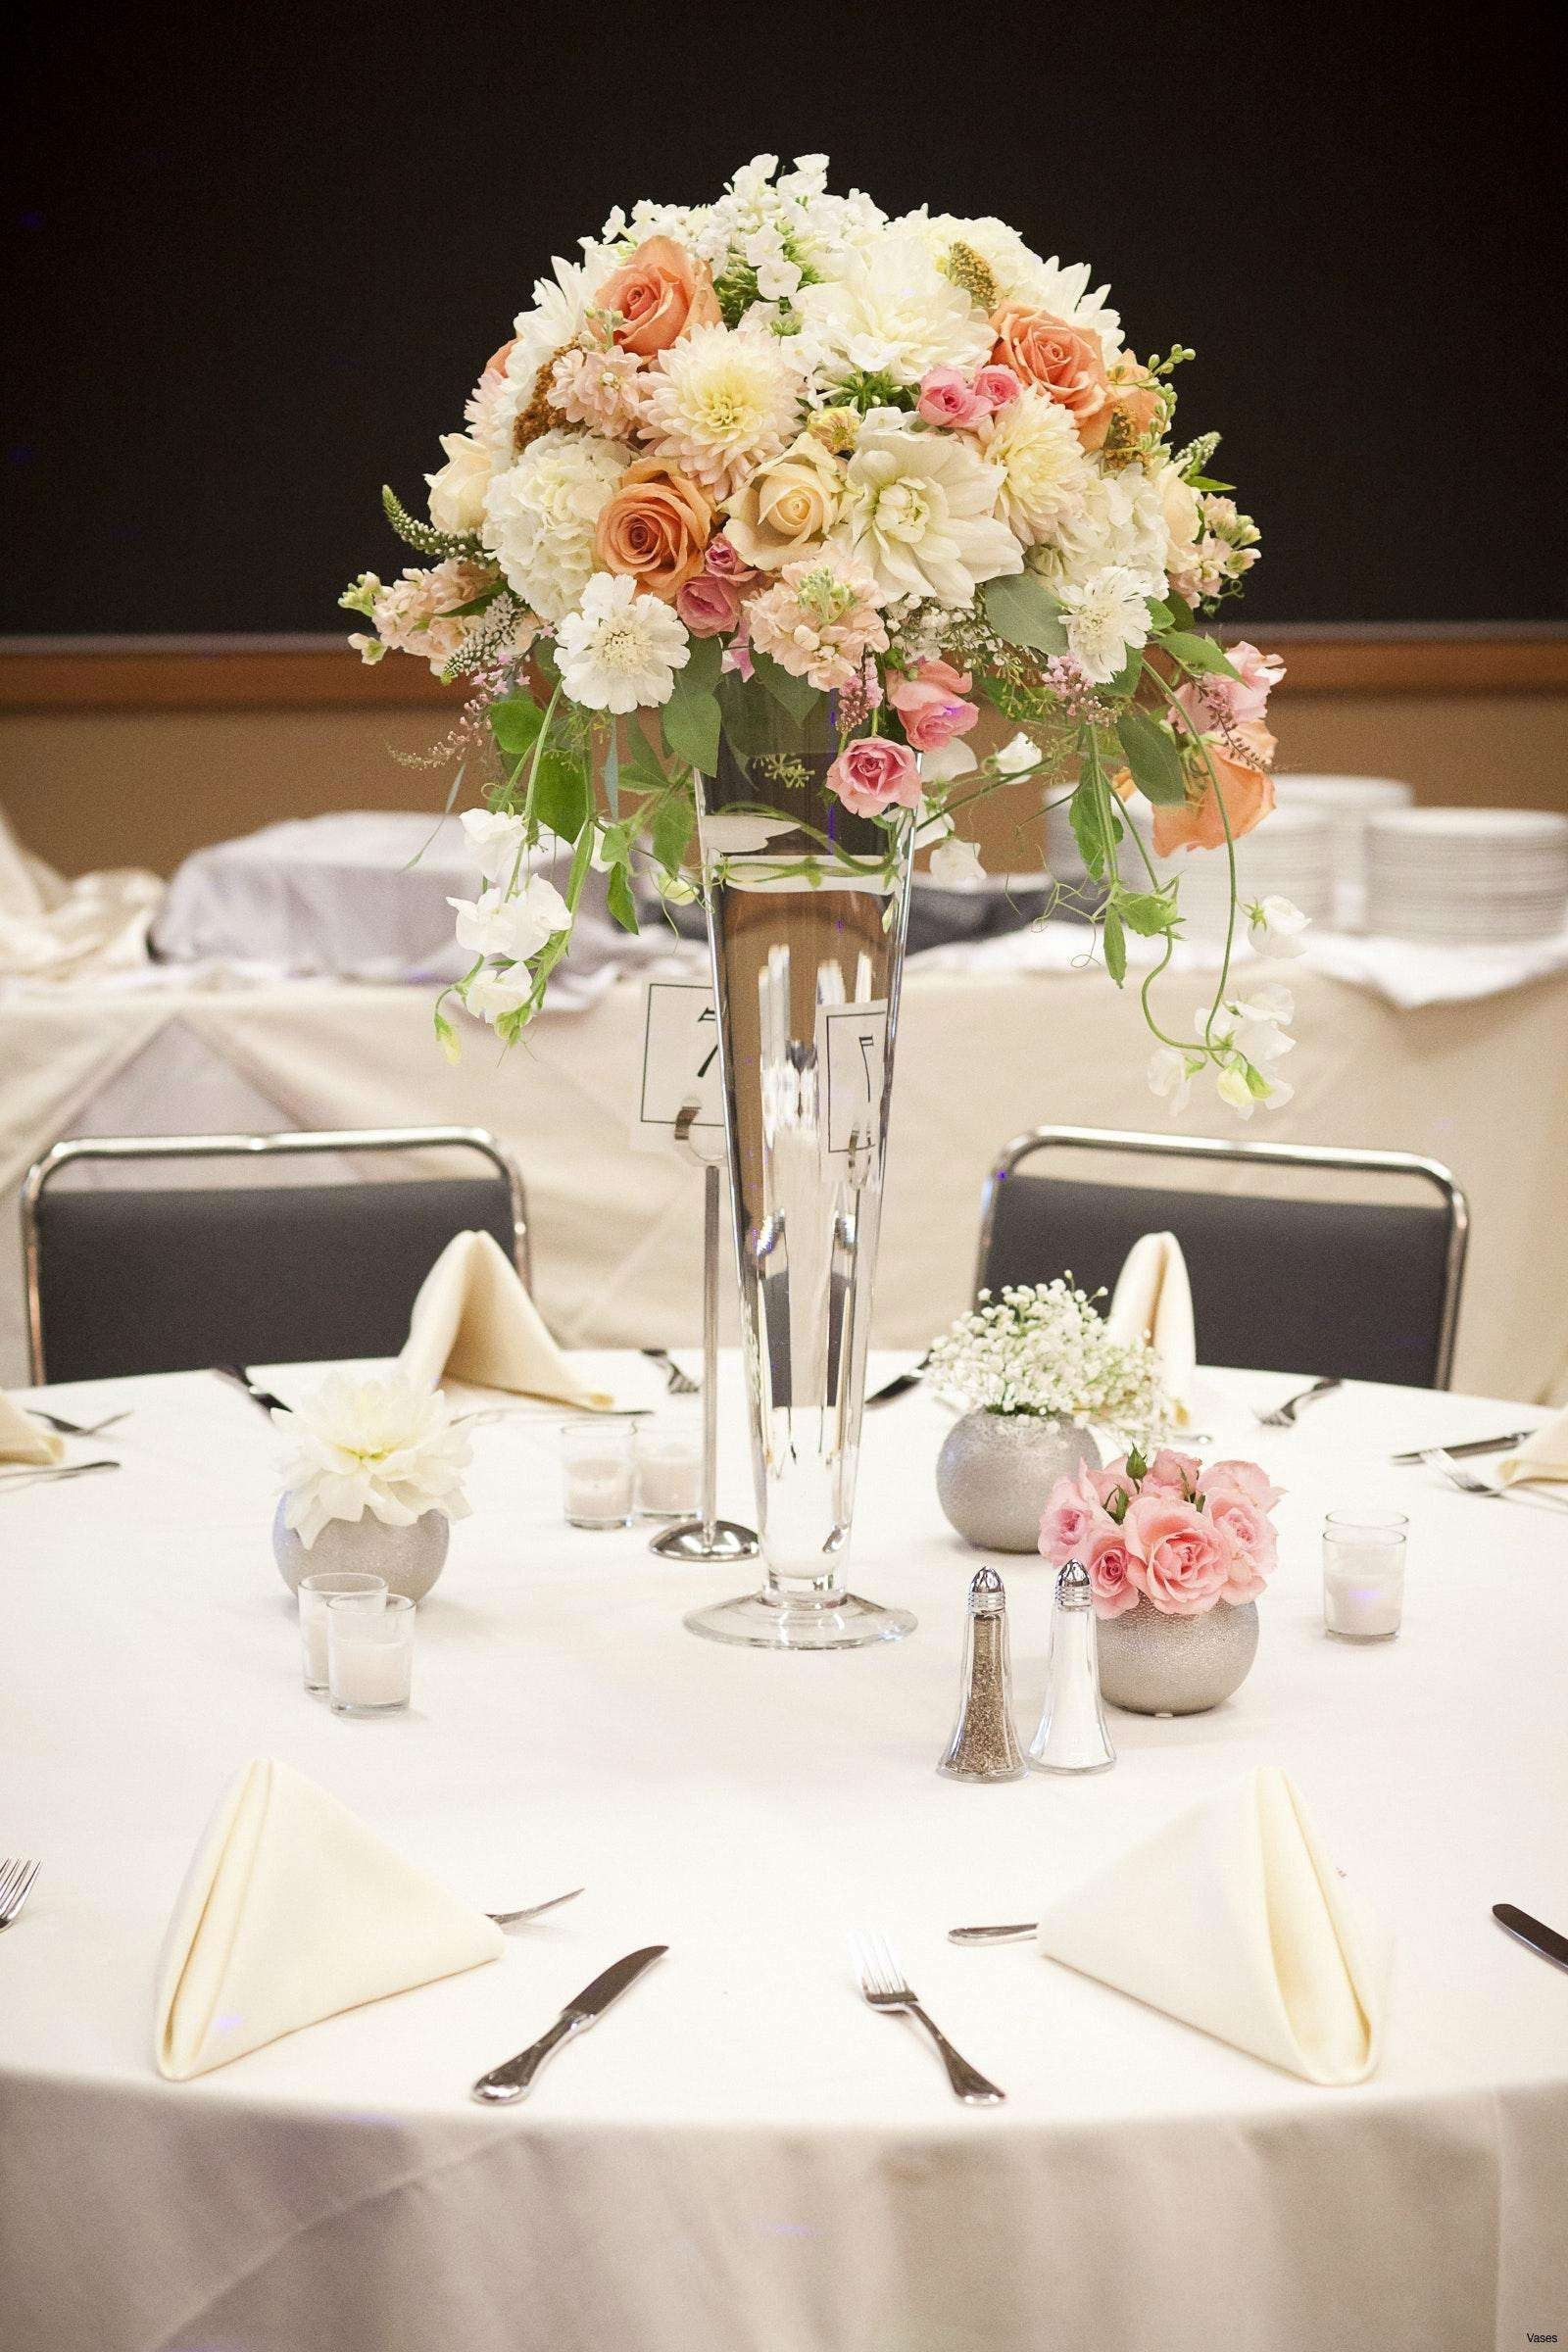 Inexpensive Cylinder Vases Of Cheap Centerpiece Vases Awesome Fresh Discount Wedding Decorations within Cheap Centerpiece Vases Awesome Fresh Discount Wedding Decorations thecrosskeyspangbourne